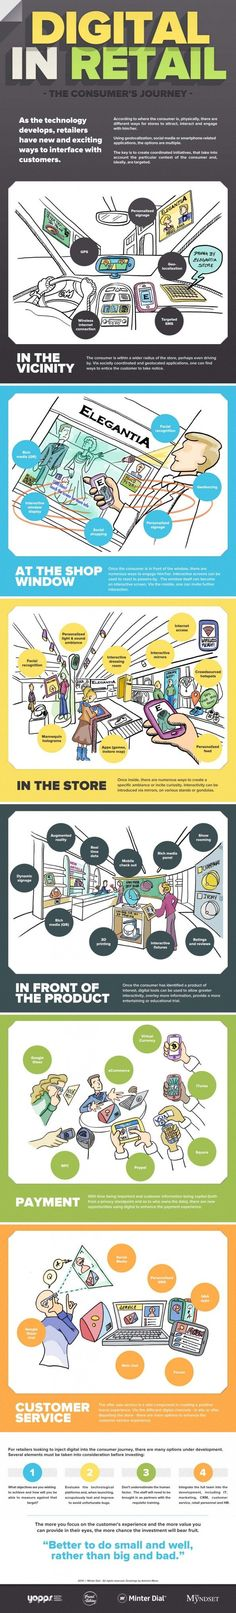 Digital in Retail: The #Consumer's Journey #retail #journey #ux #cx